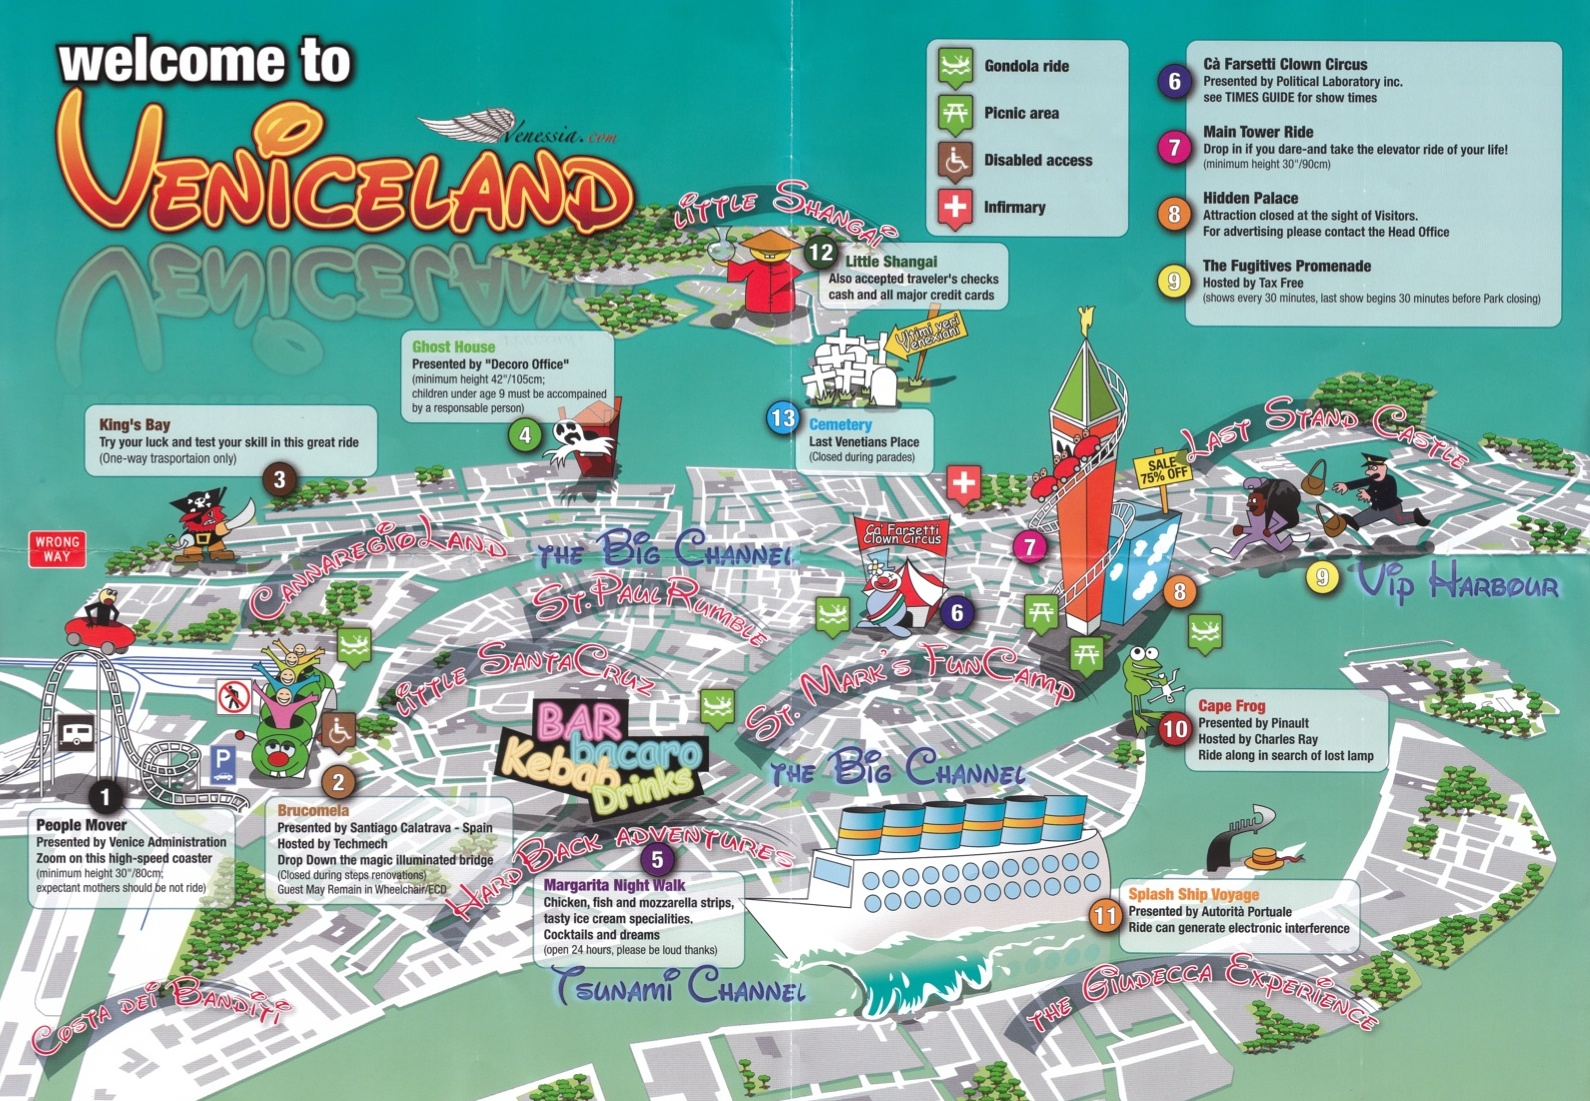 Is venice now a new disneyland dstandishs weblog veniceland publicscrutiny Images